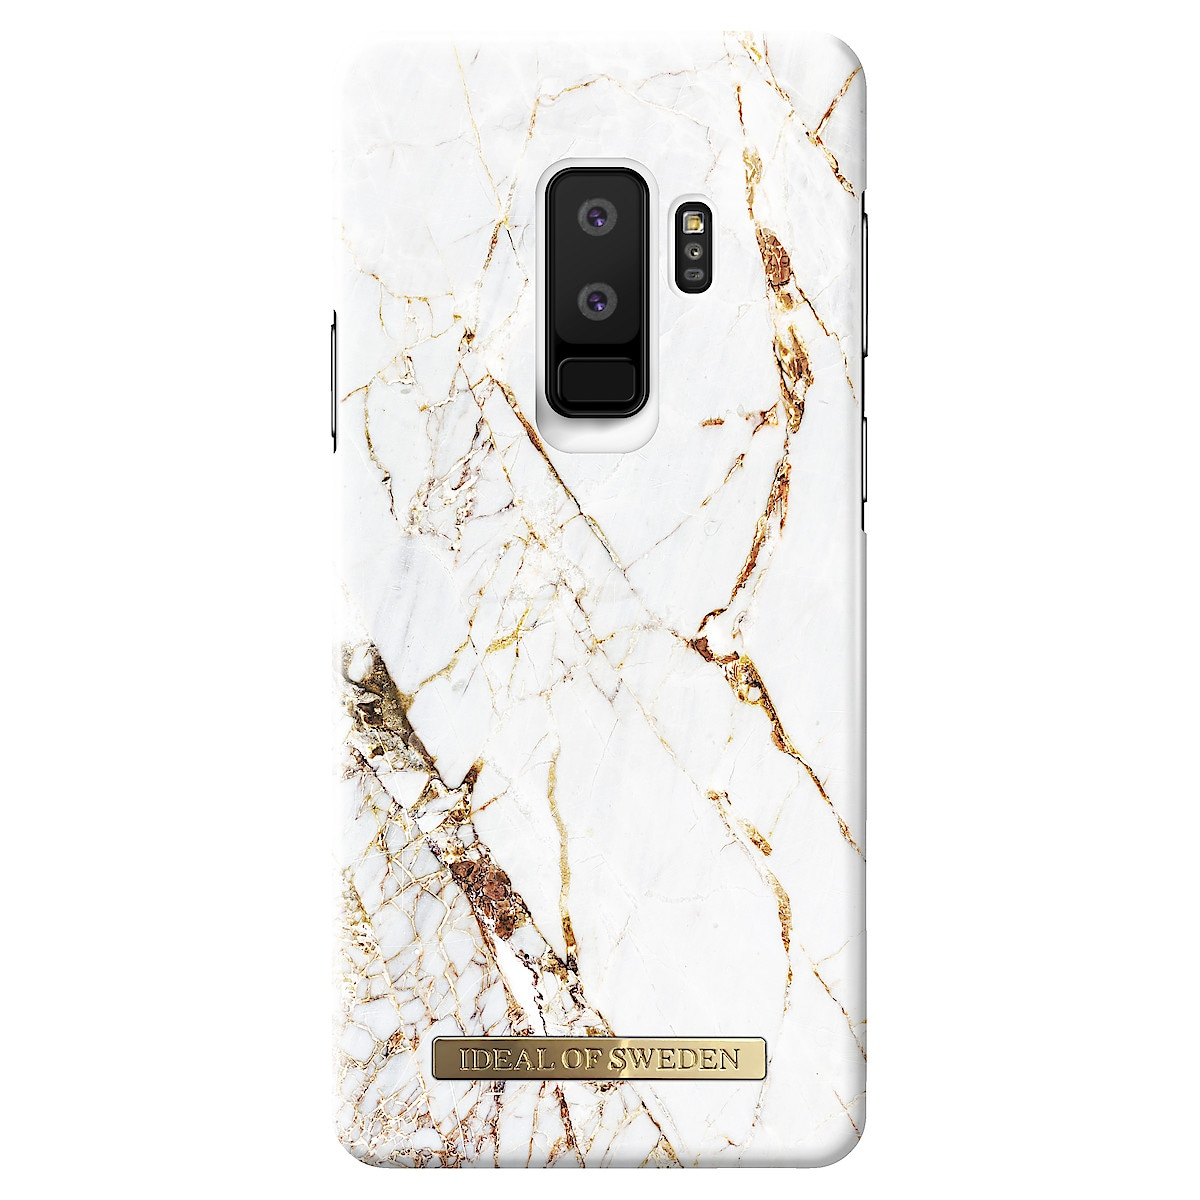 iDeal of Sweden deksel for Samsung Galaxy S9 Plus